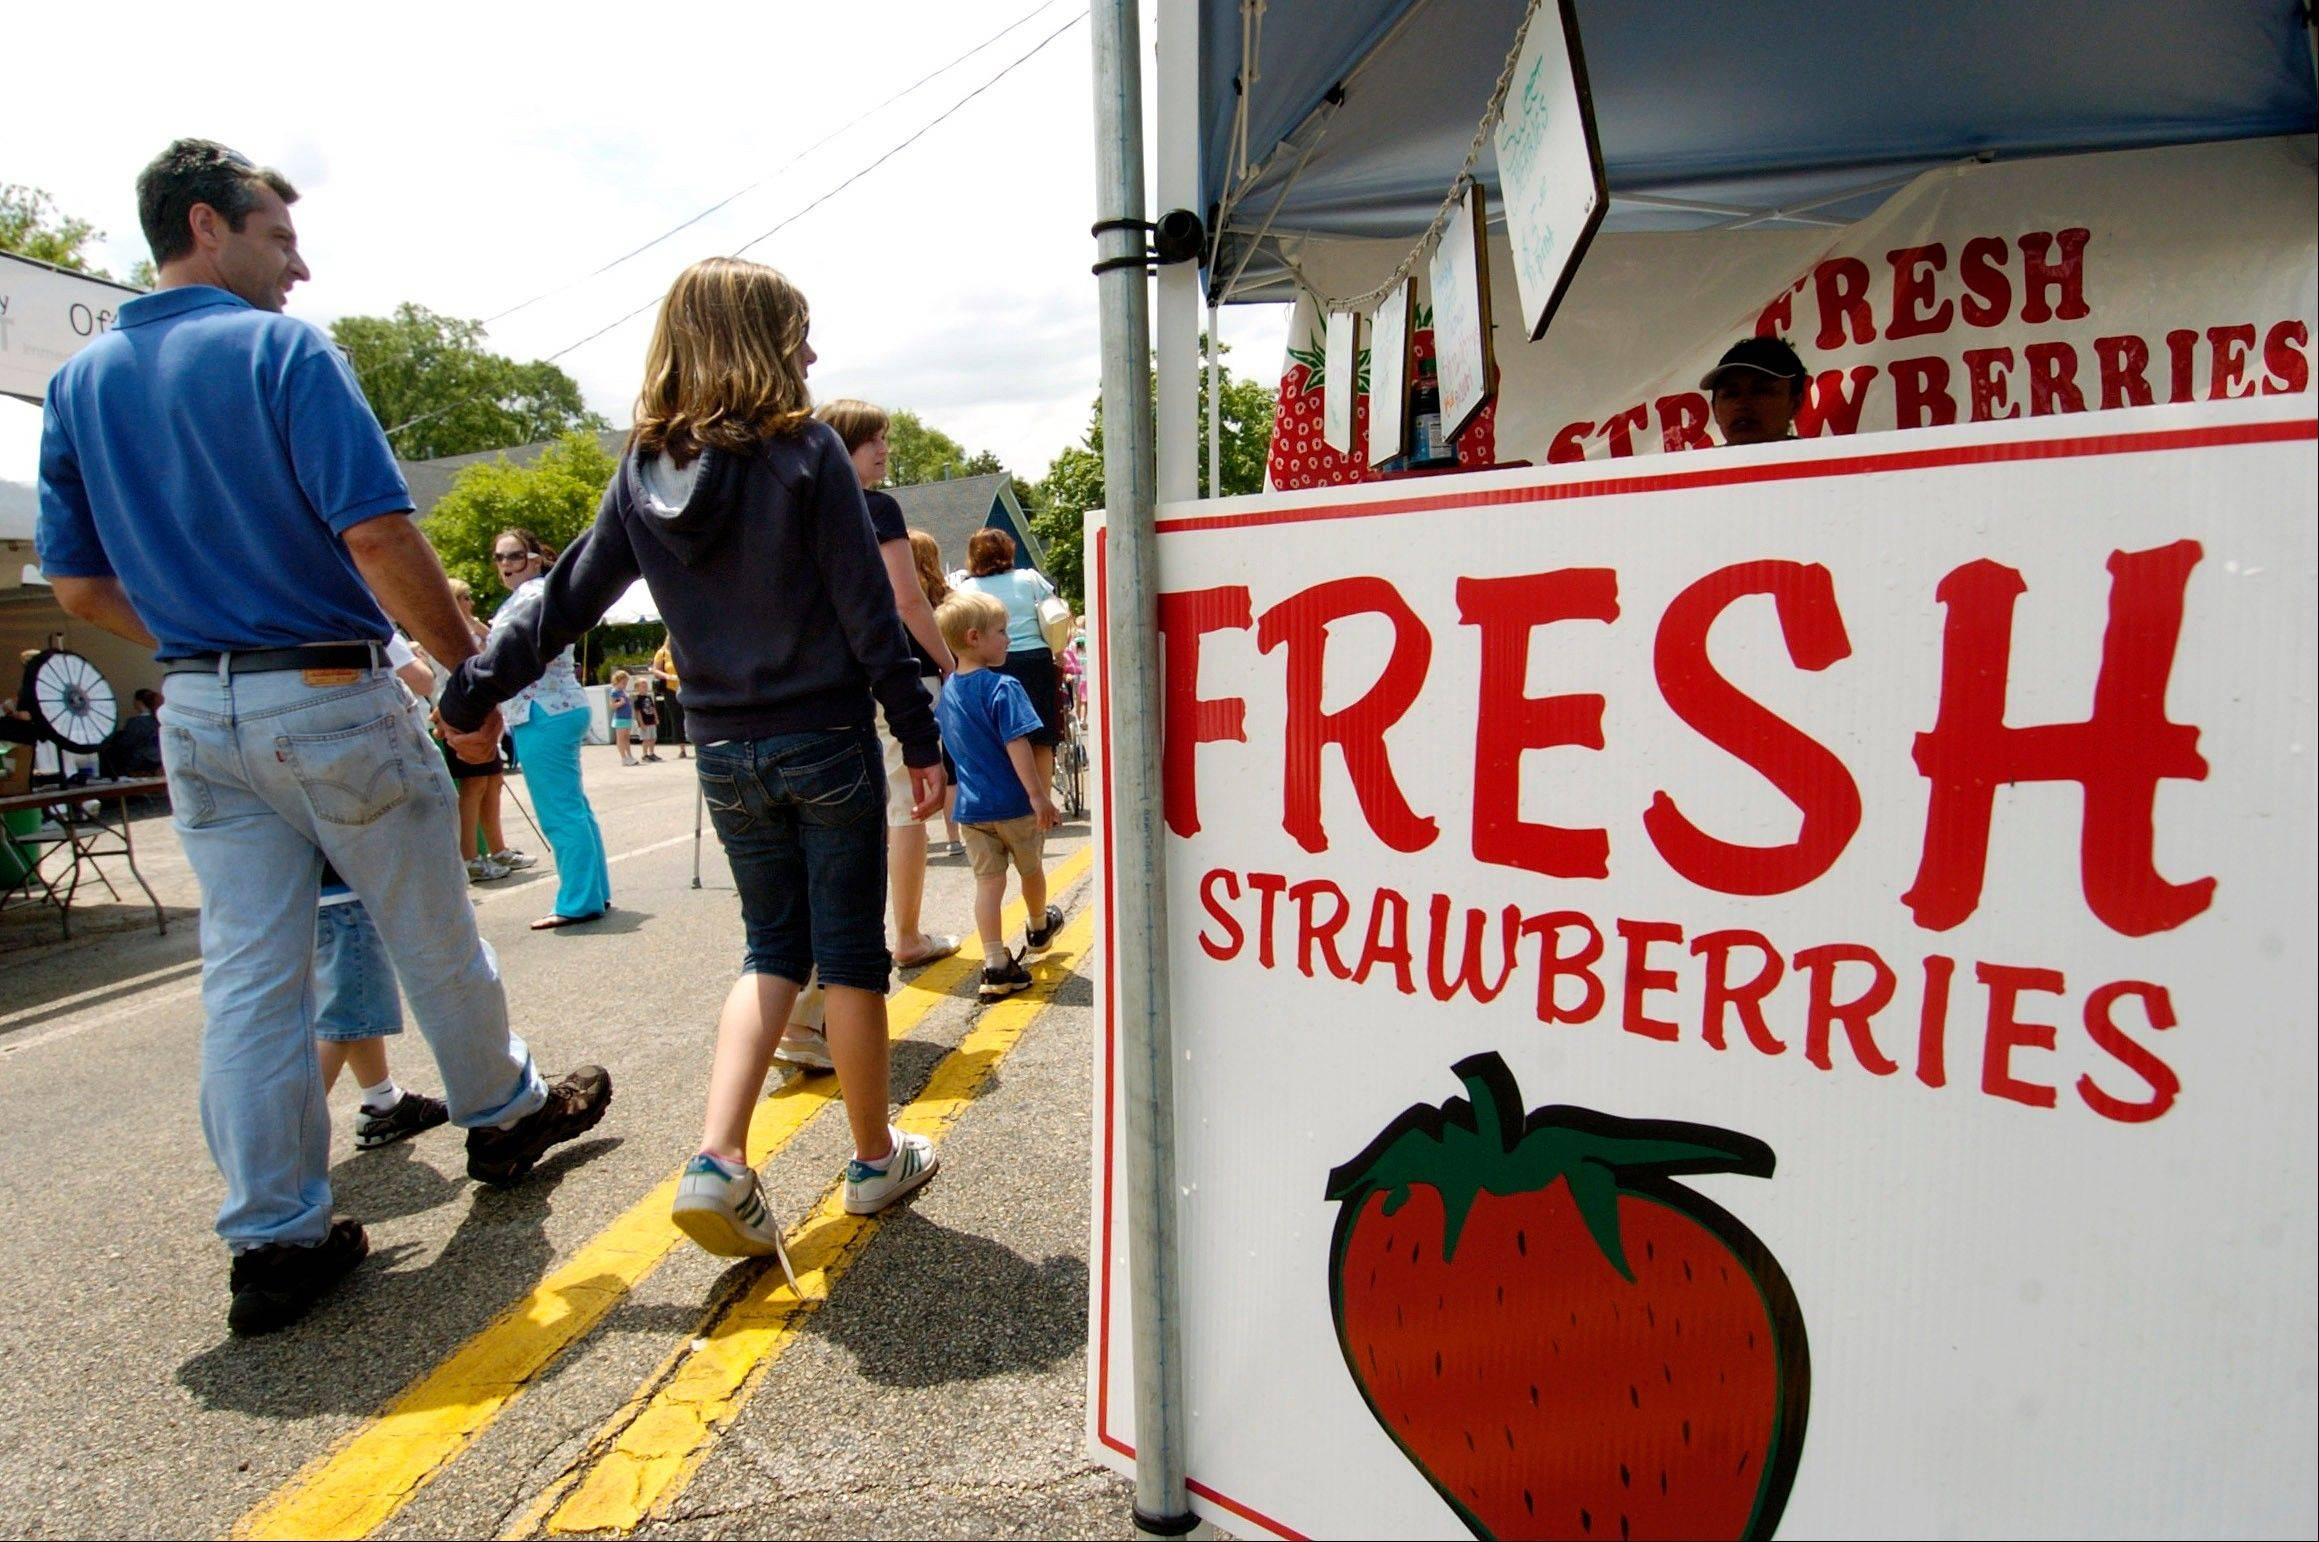 Visitors stroll past a booth with simplest treat of all -- plain strawberries.